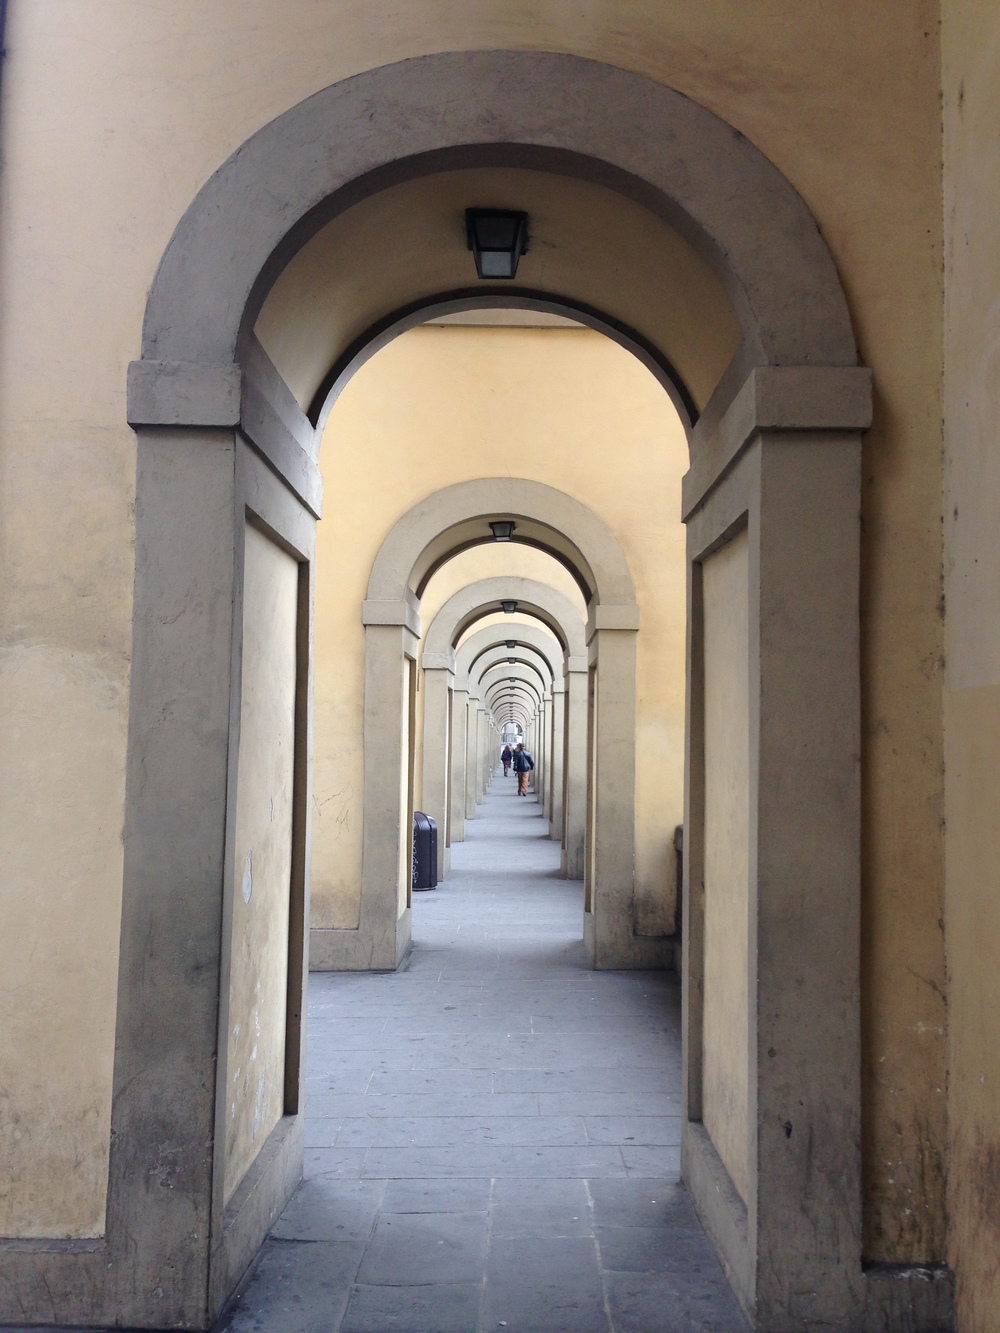 walkway by ponte vecchio, florence, italy